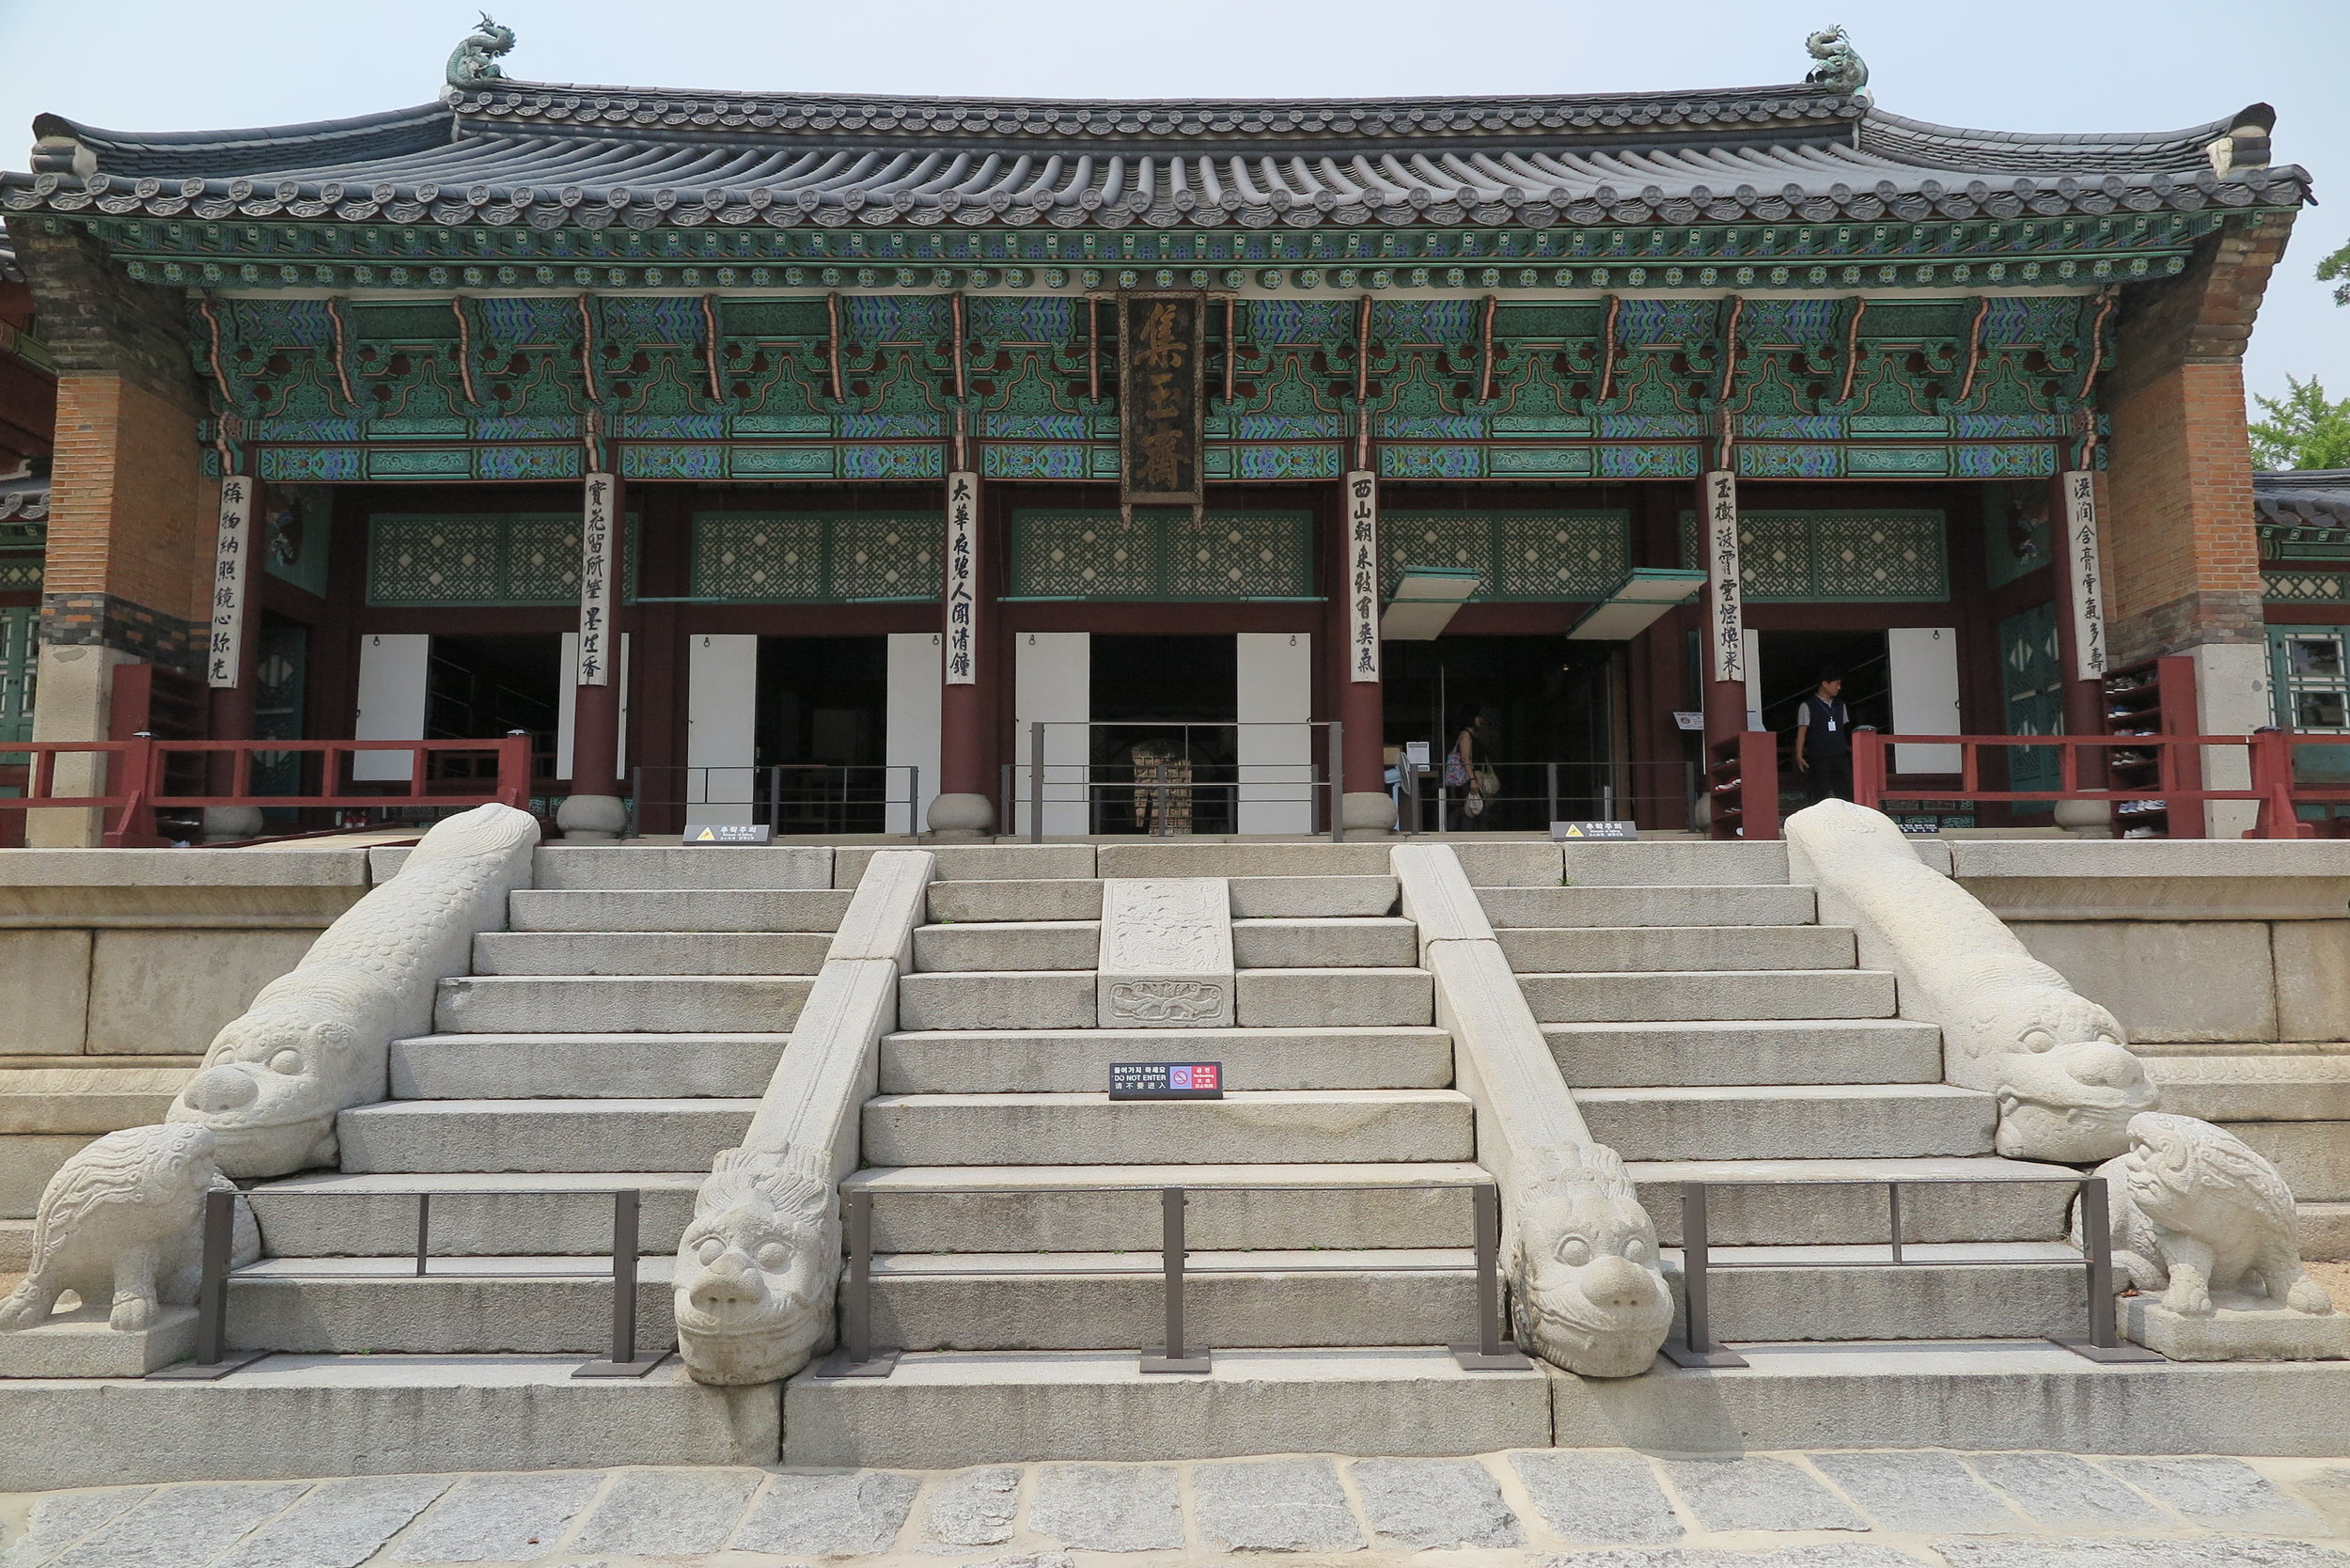 One of the palaces in the Gyeongbokgung Palace complex in the middle of Seoul